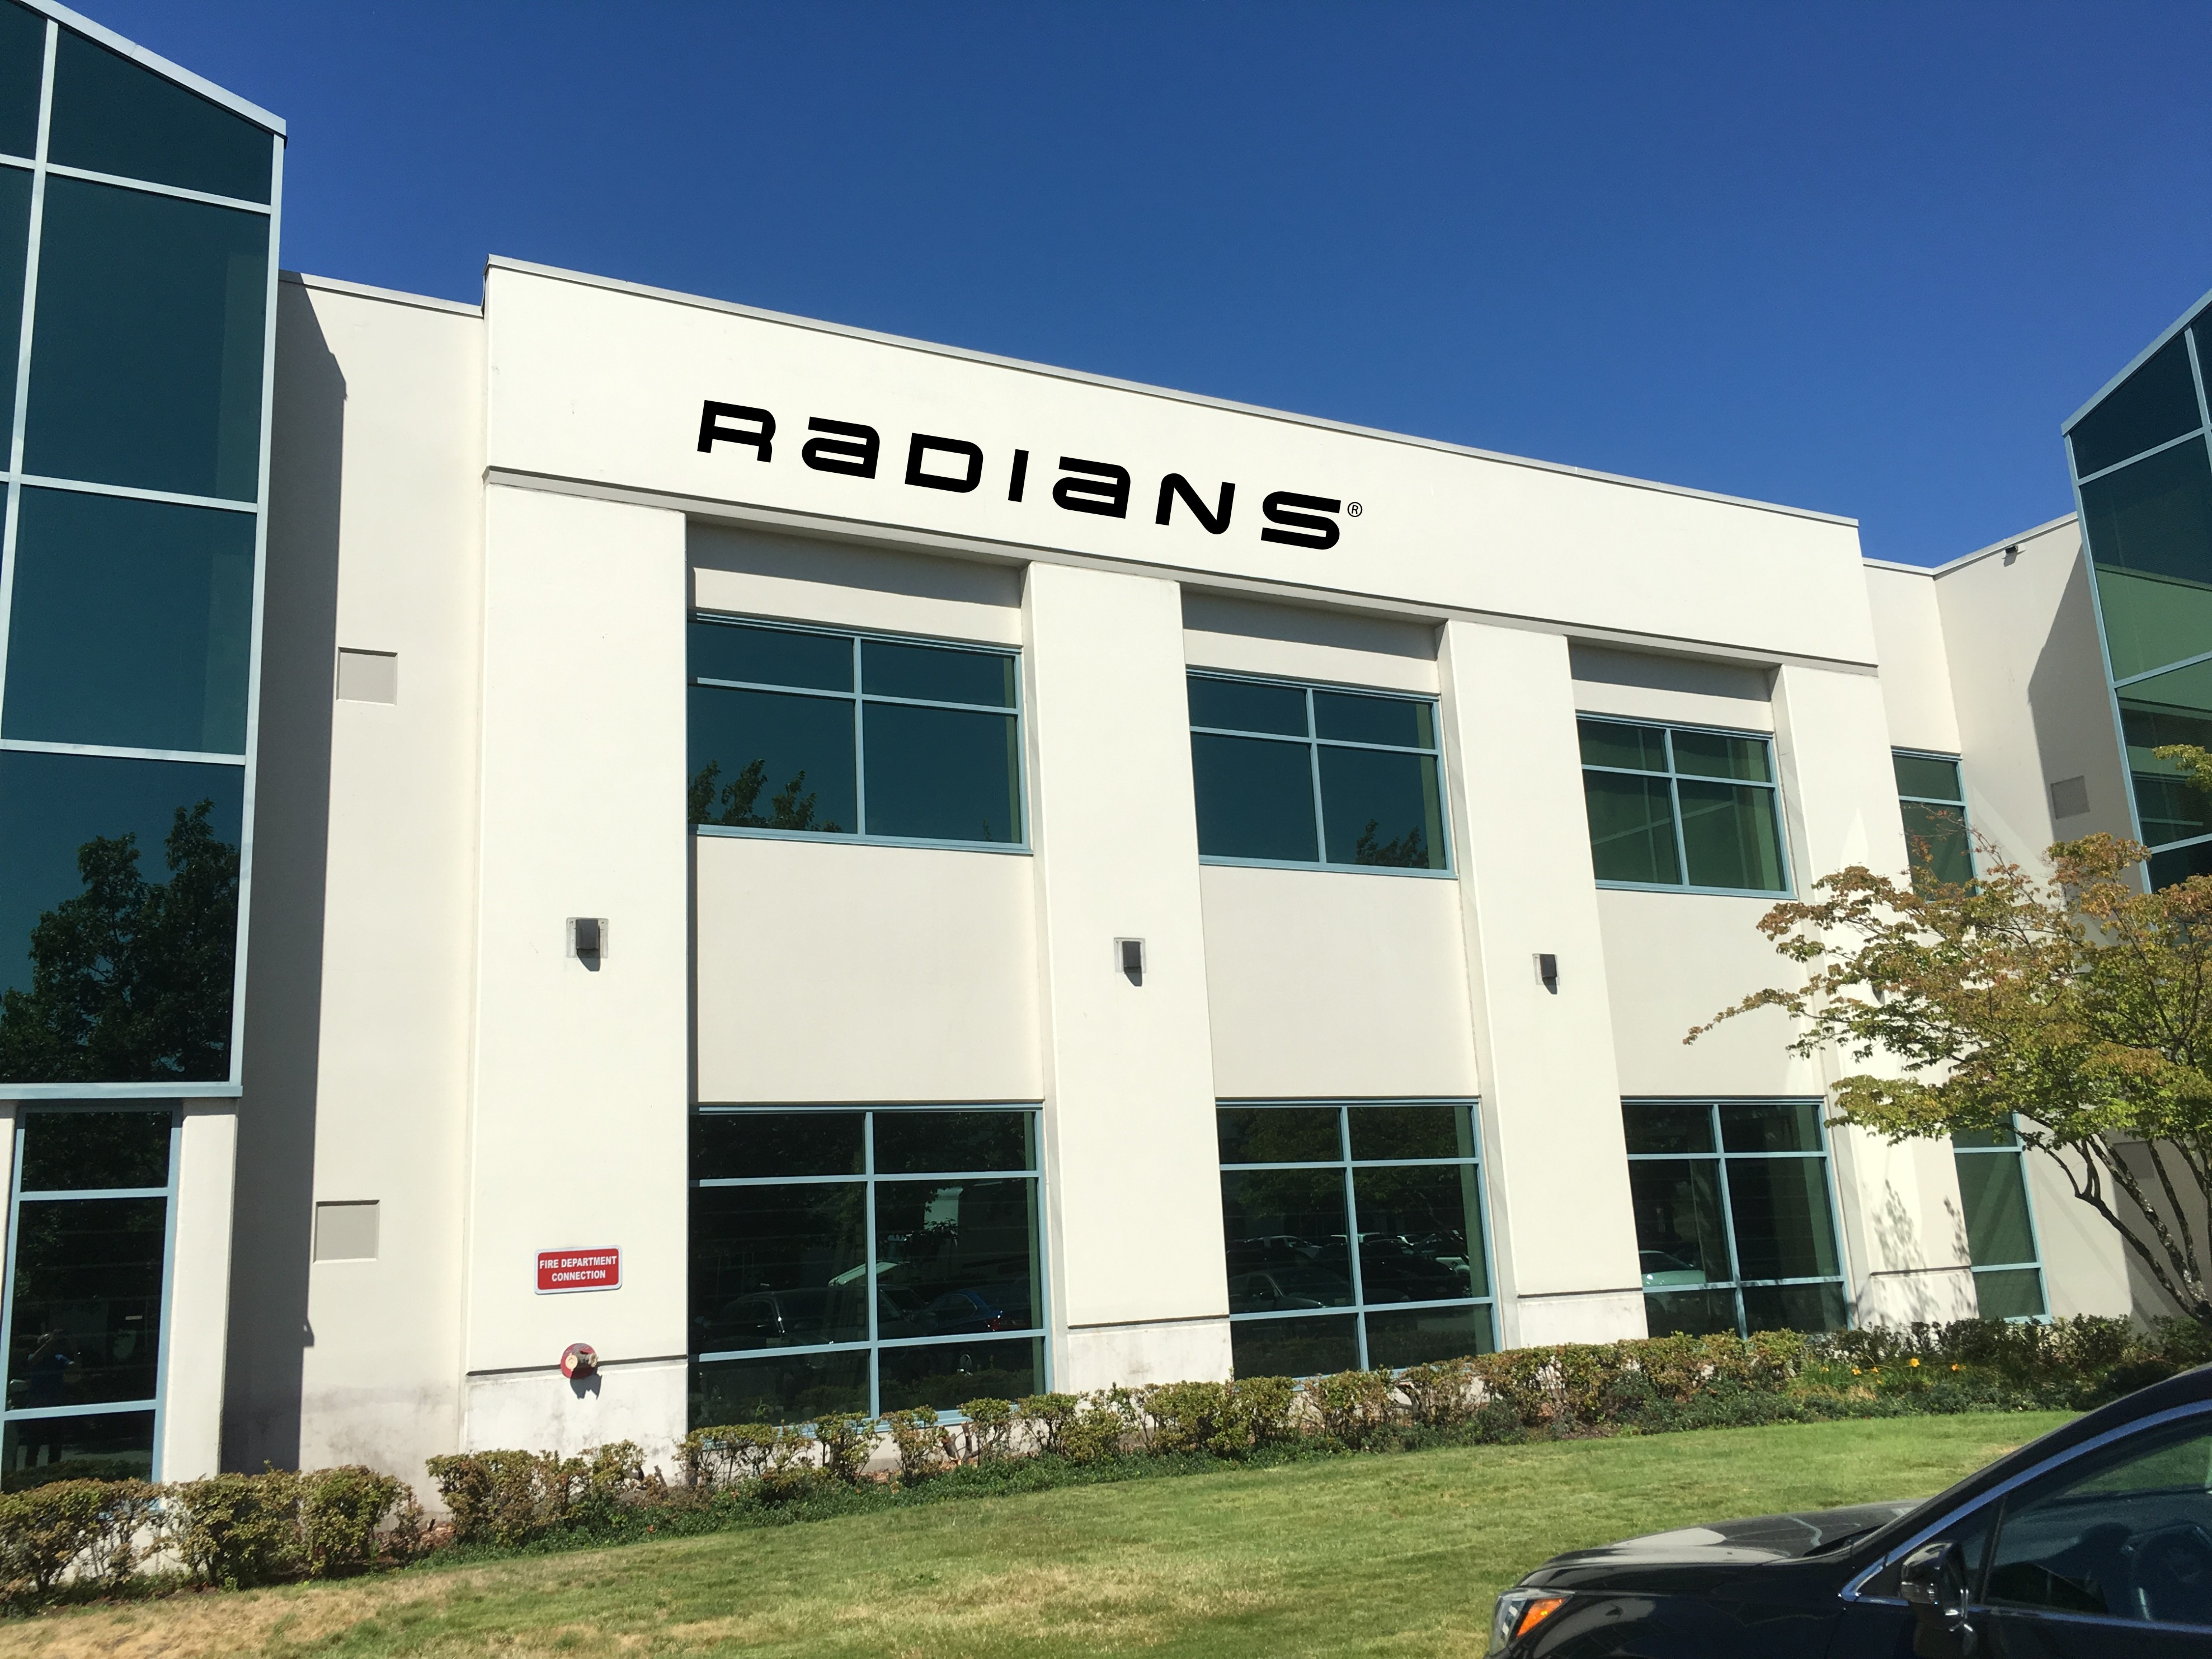 Radians is pleased to announce the opening of its new Canadian distribution center in British Columbia.